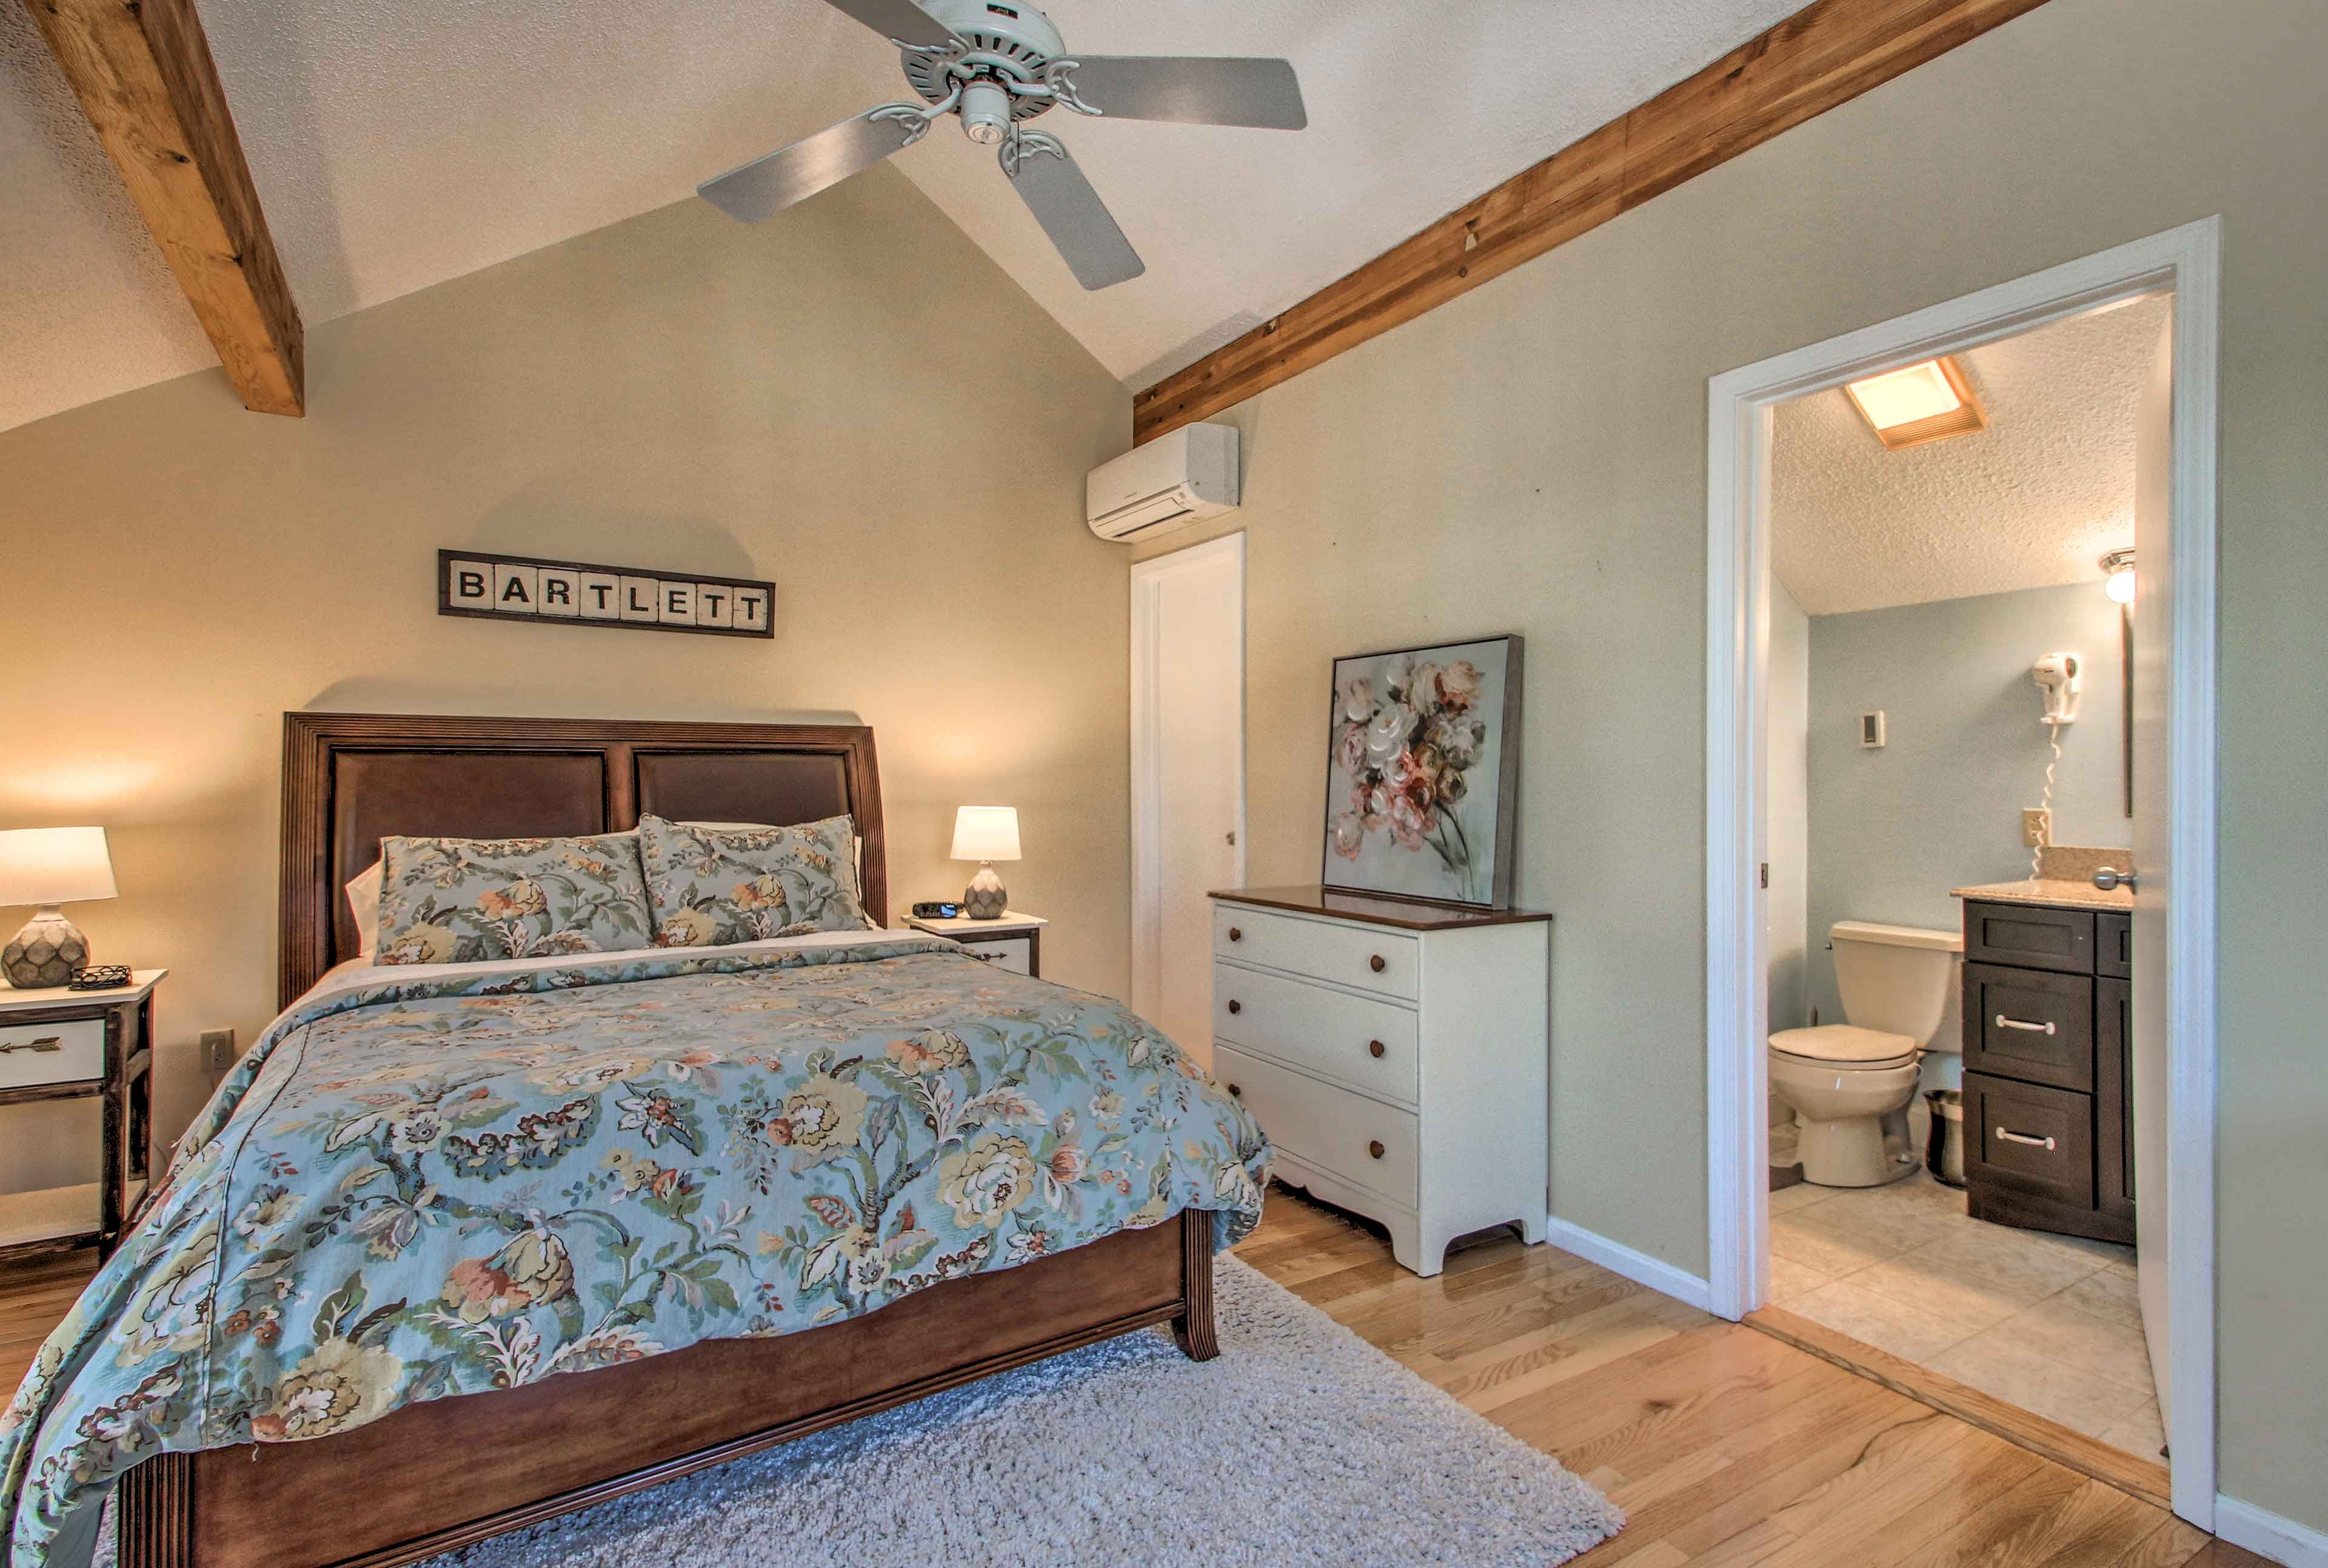 Take the spiral staircase to this charming bedroom upstairs!